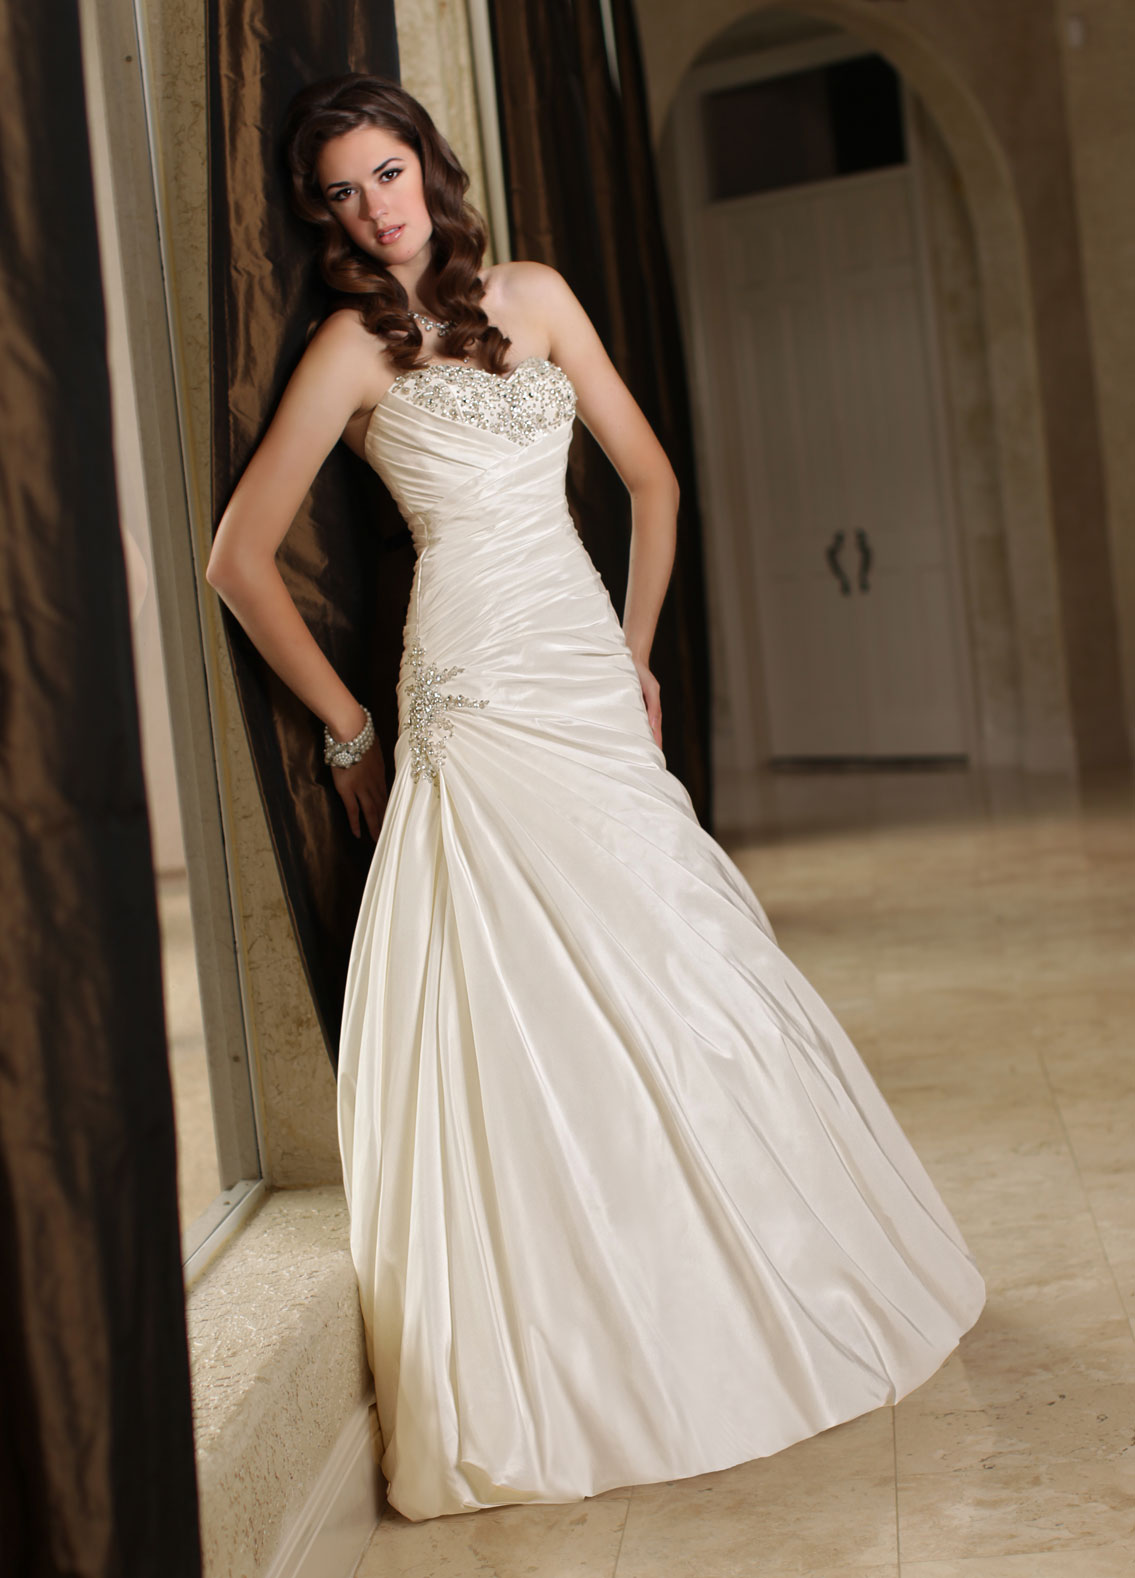 Hollywood Romance 12 Ultra Dreamy Wedding Gowns Davinci Bridal Blog